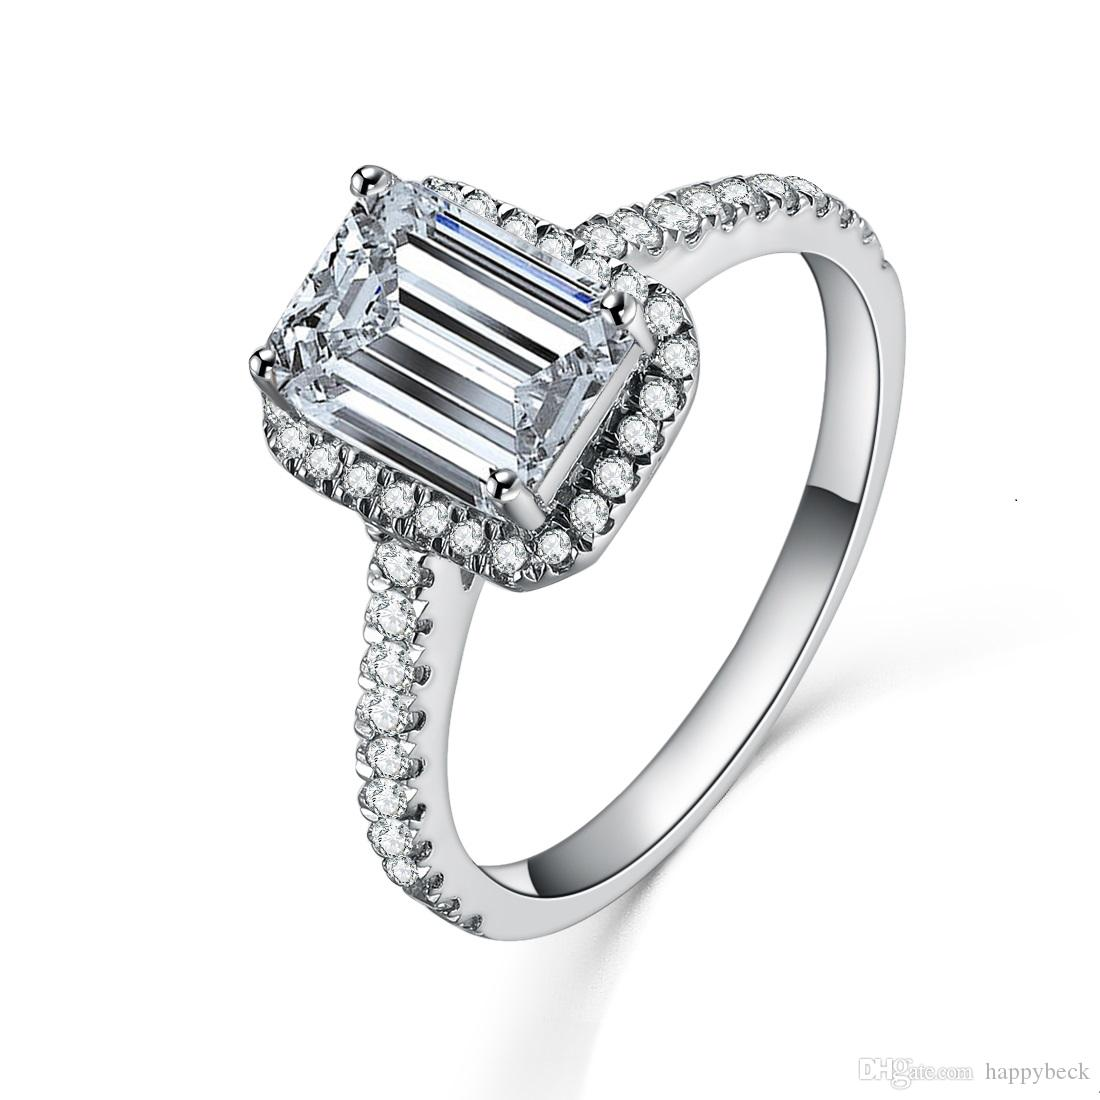 1CT Emerald Cut Synthetic Diamond Engagement Ring Excellent Sterling Silver  Fine Wedding Anniversary Jewelry